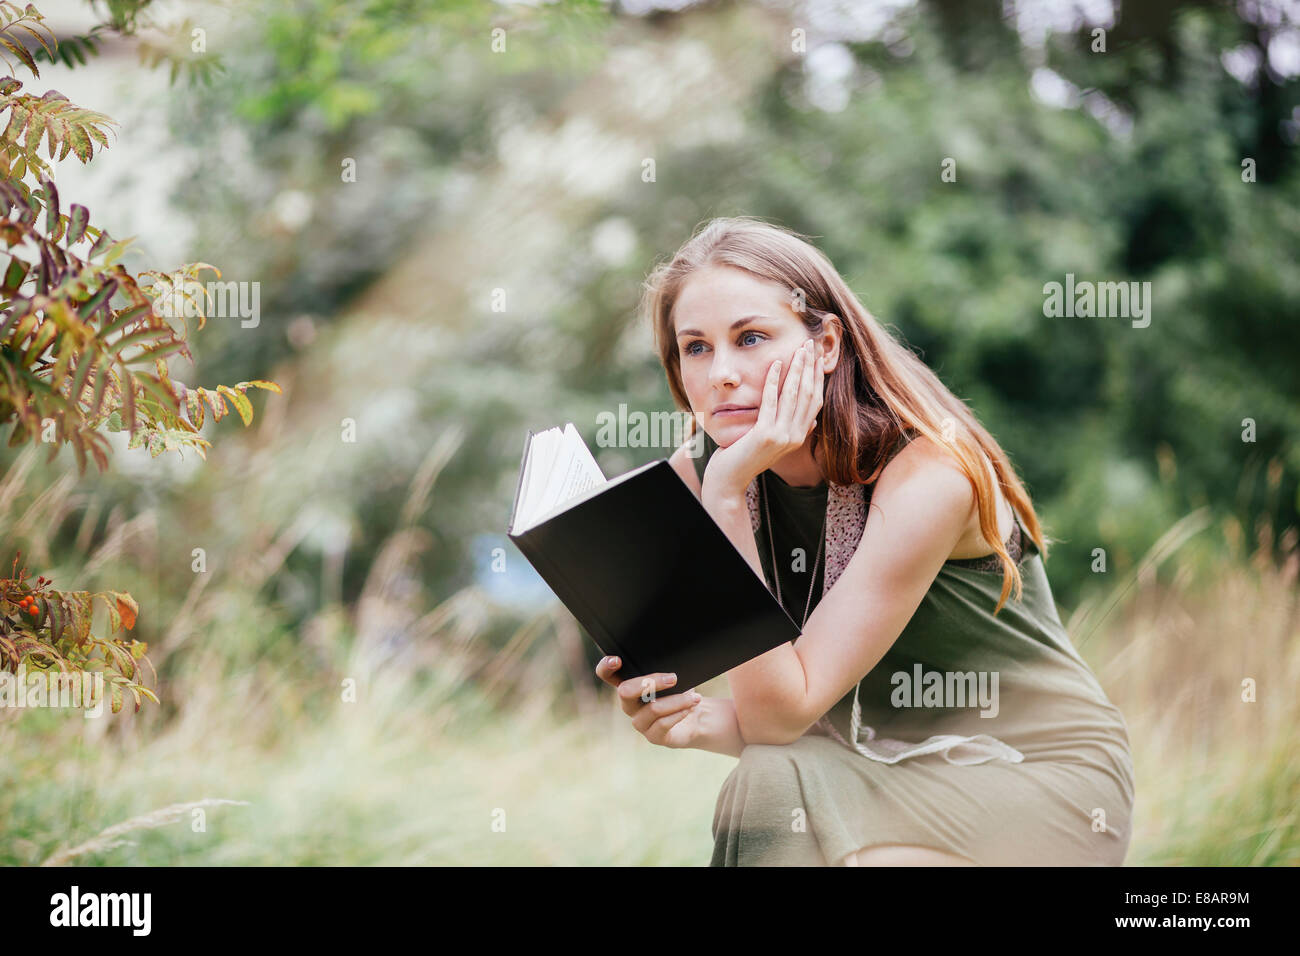 Young woman with chin on hand reading book in field - Stock Image